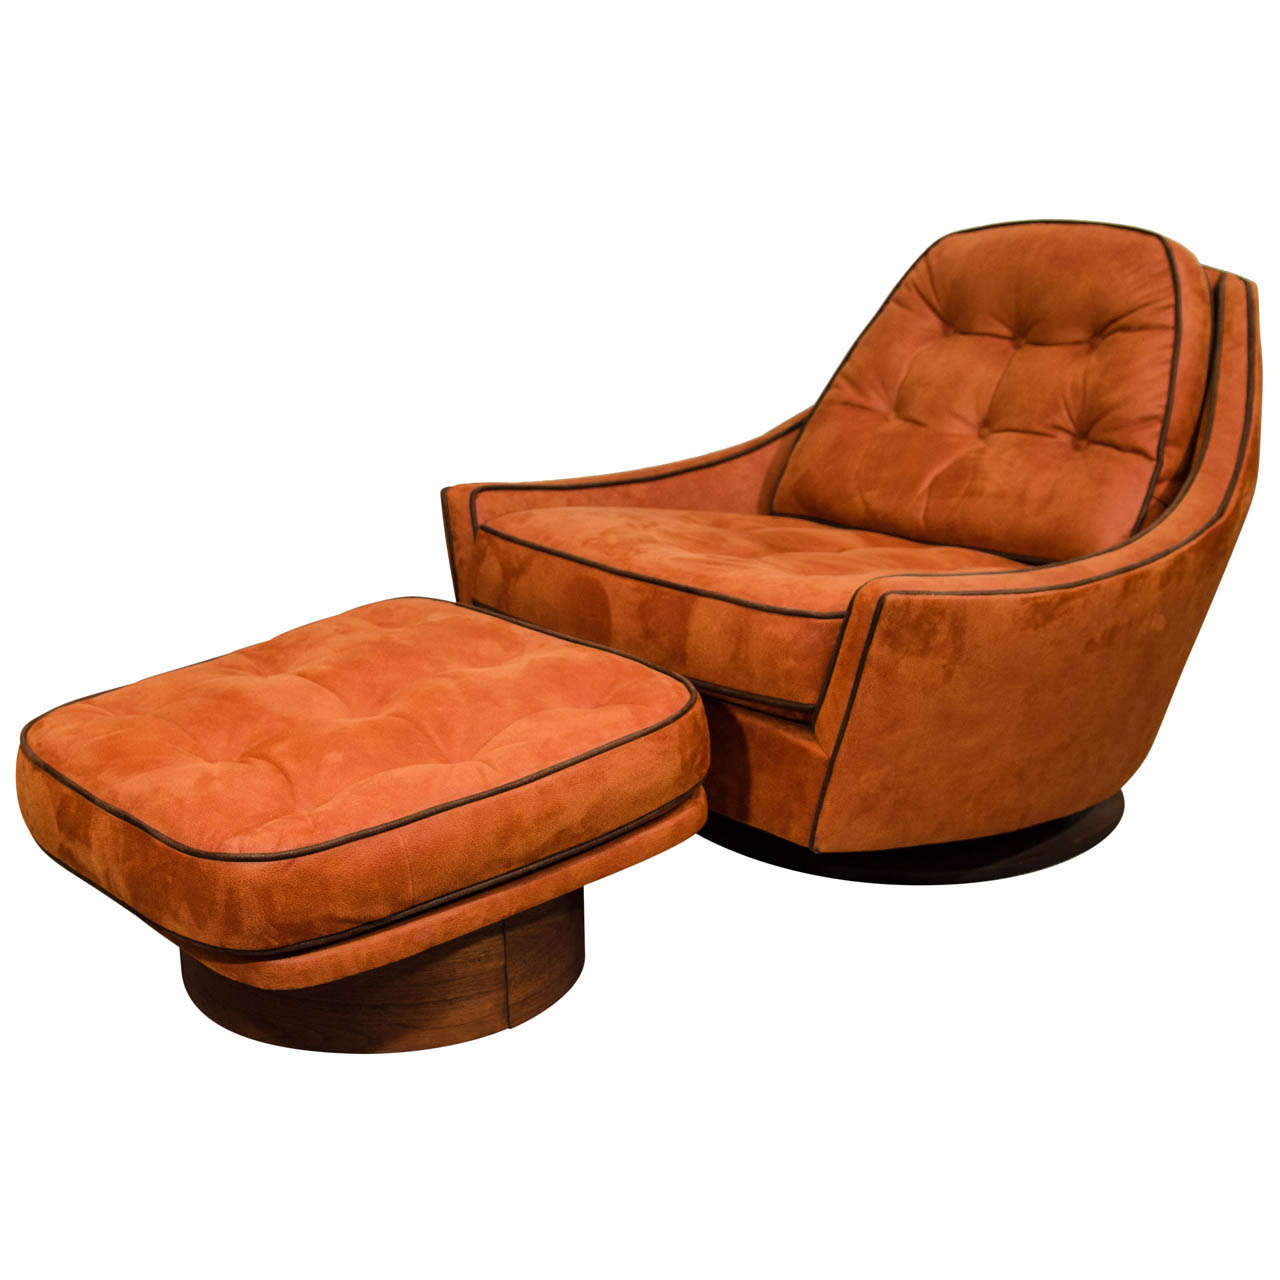 Vintage swivel club chair and ottoman at 1stdibs for Swivel club chair leather